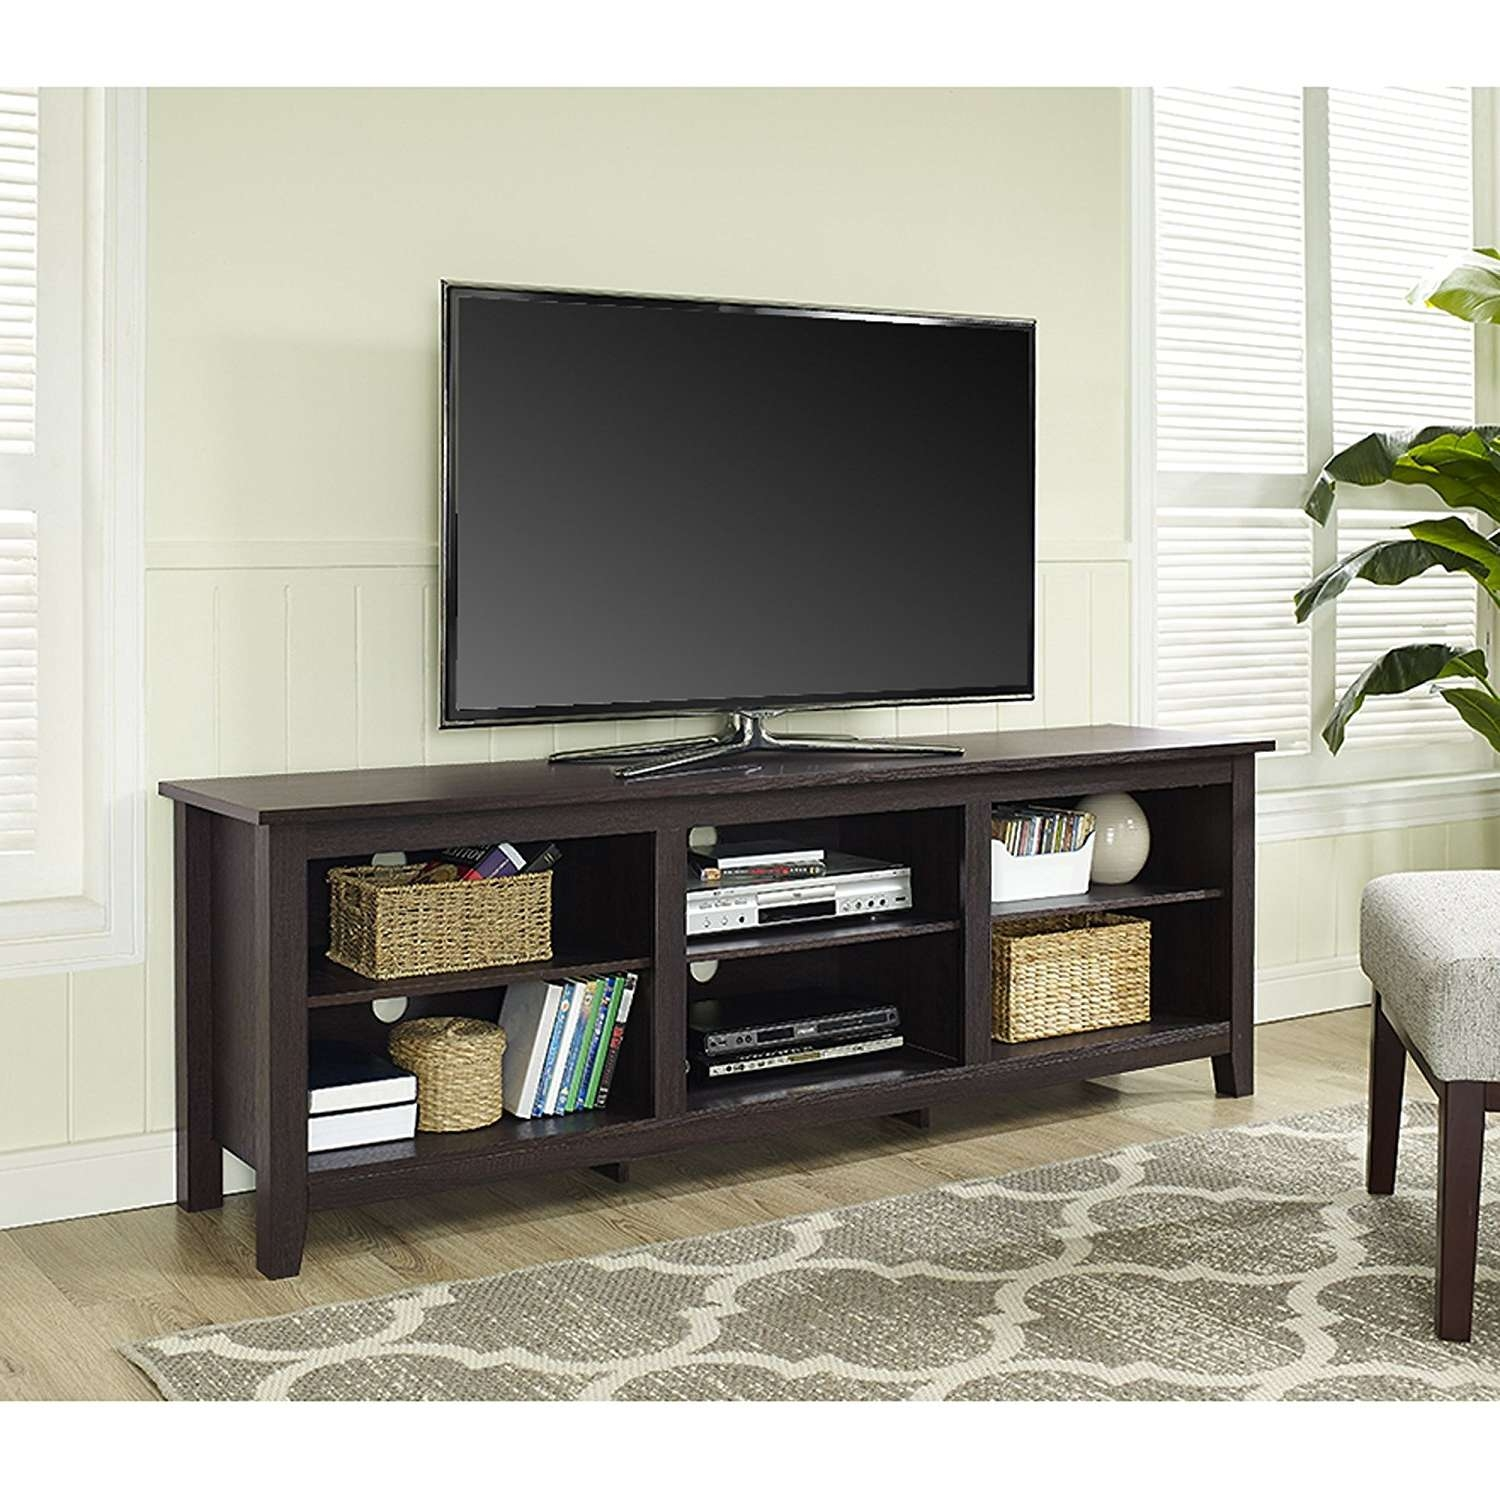 Bedroom Design : Magnificent Corner Tv Stand With Mount Modern Tv Regarding Modern Tv Stands With Mount (View 11 of 15)